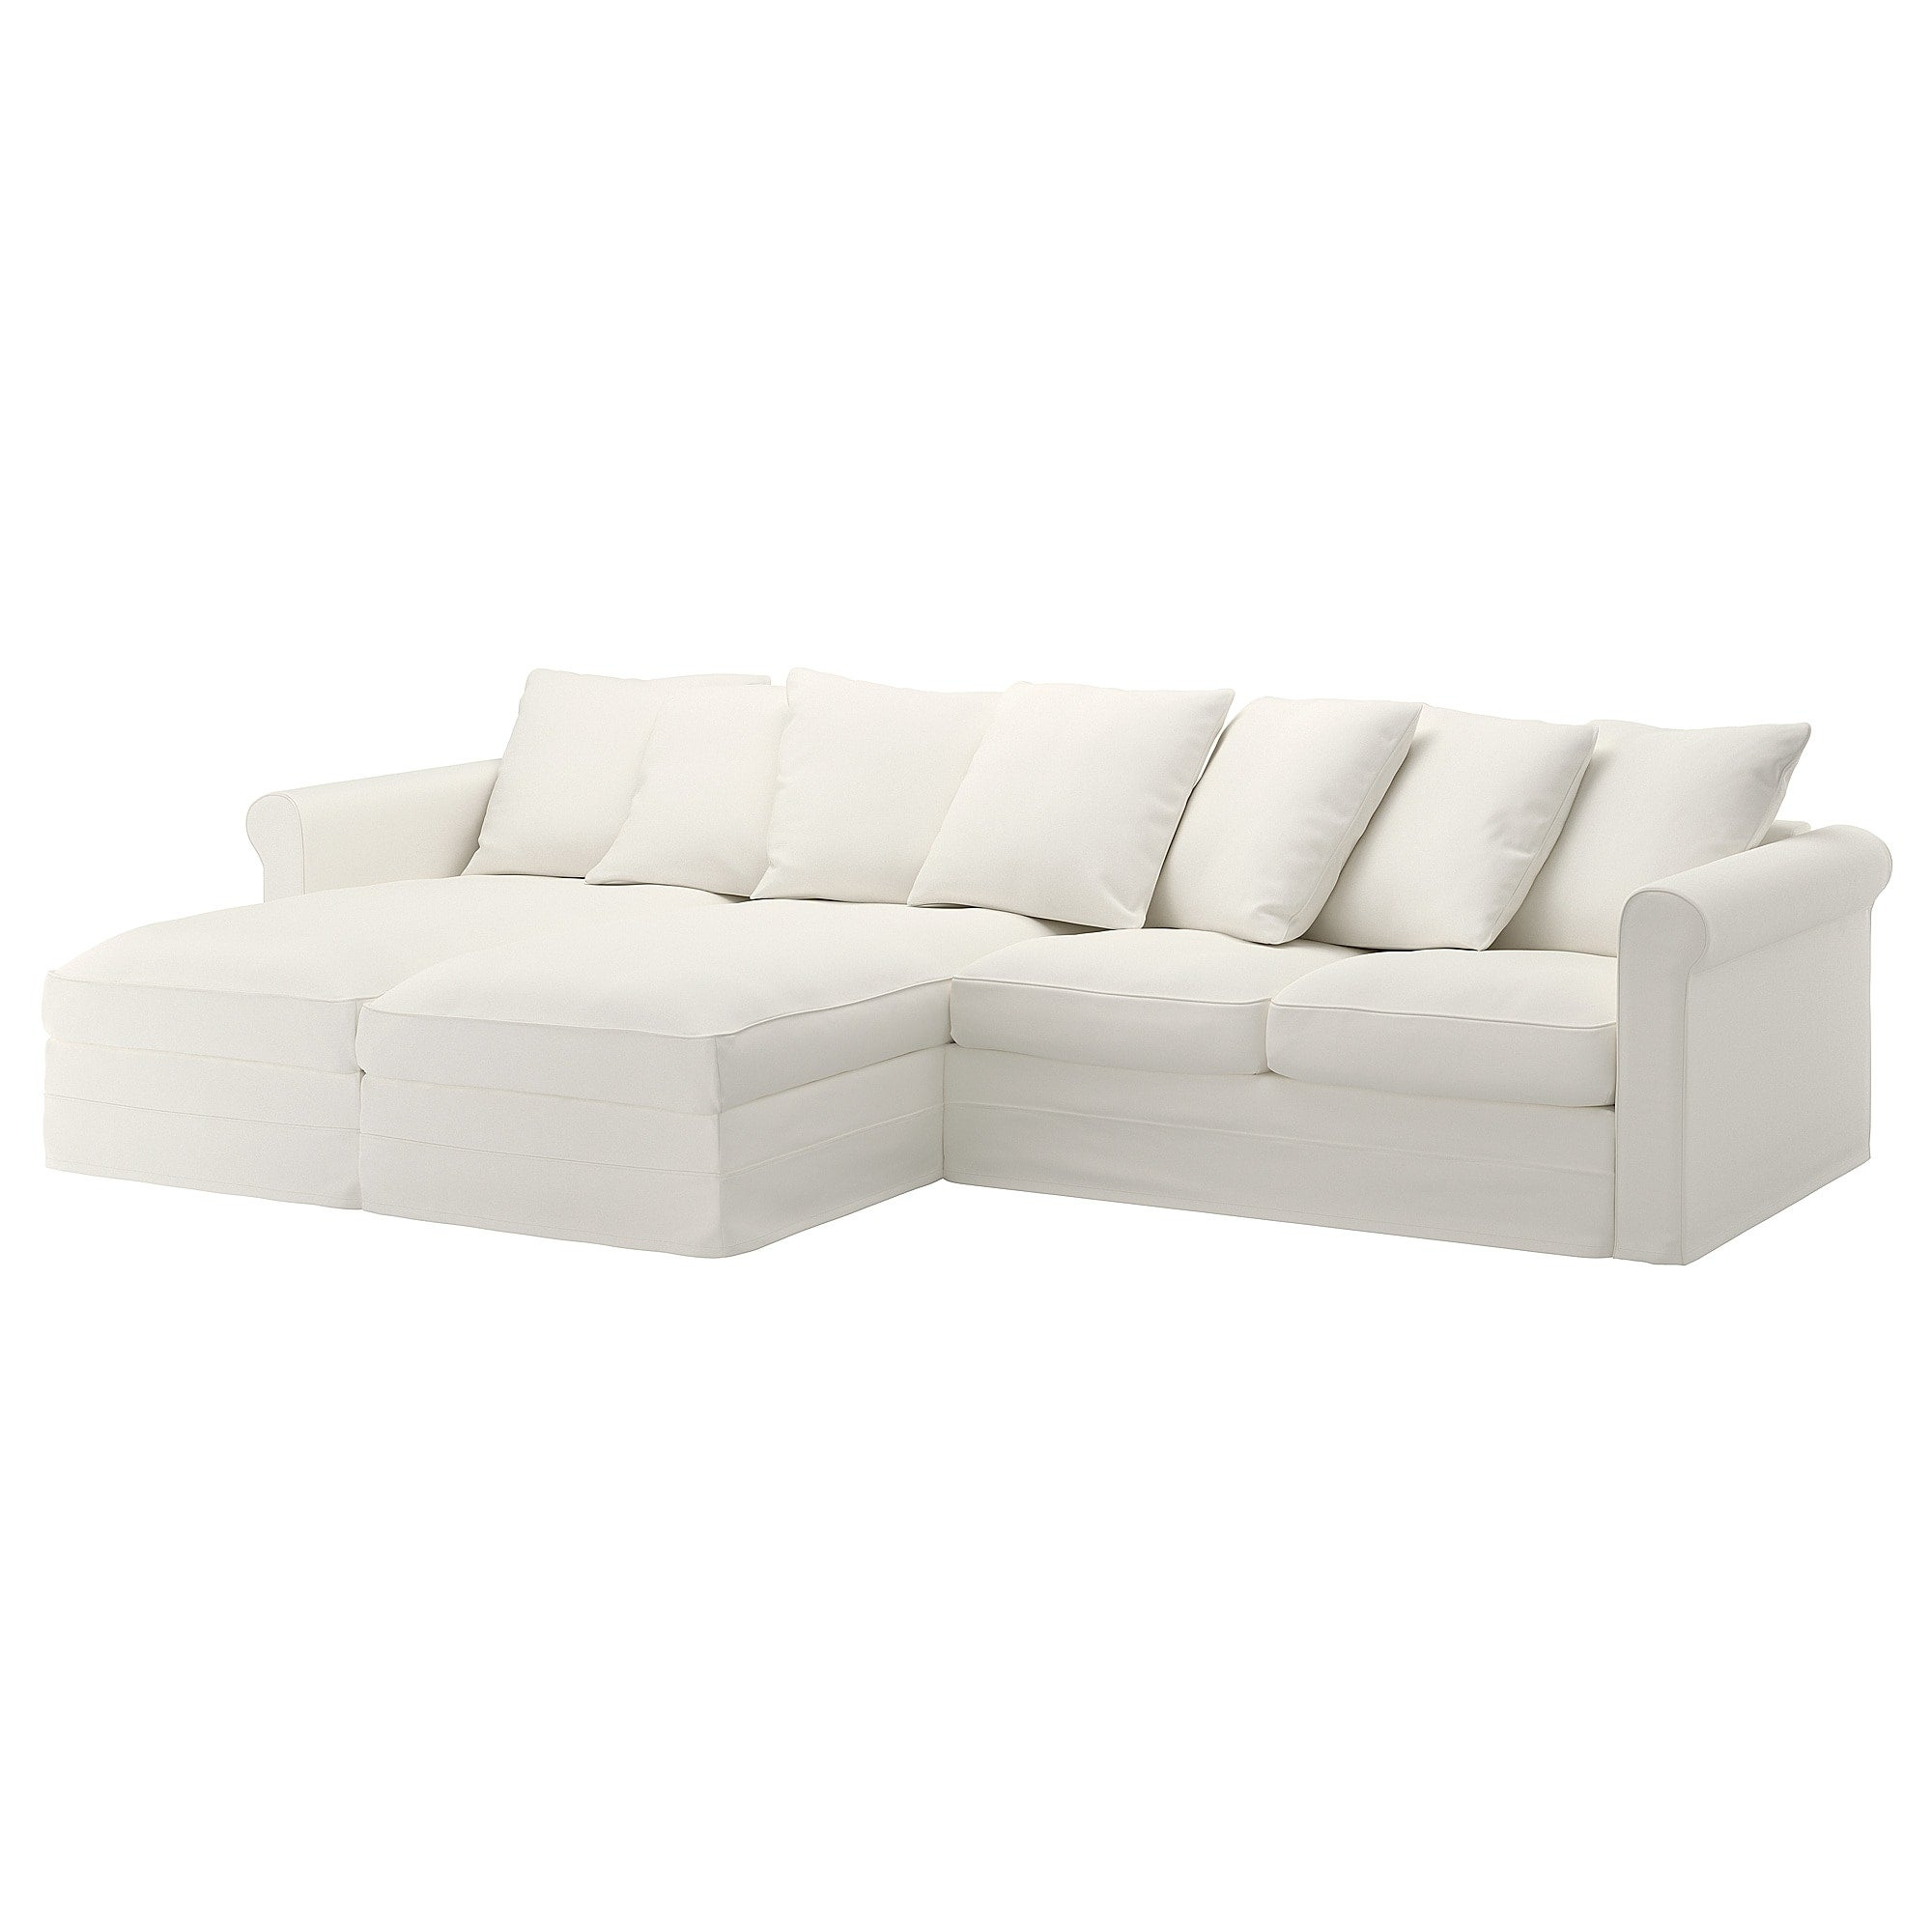 haerlanda-sectional-4-seat-with-chaise-inseros-white__0577222_PE668690_S5